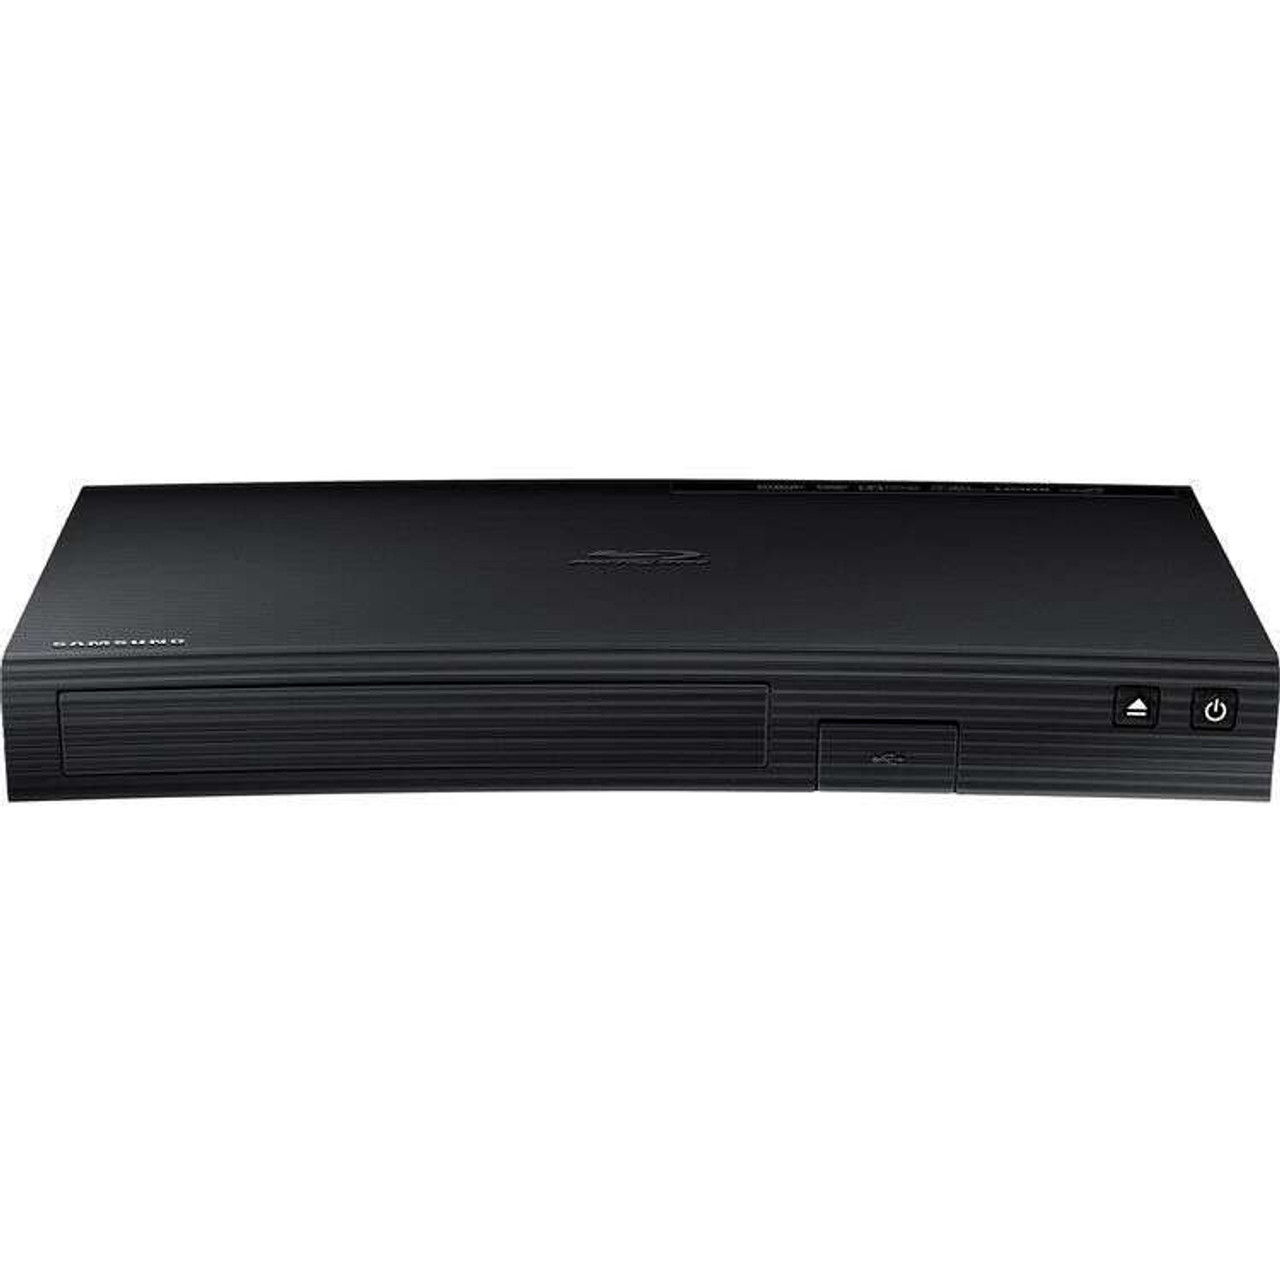 Samsung BD-J5100/ZAR 1080P Curved Blu-Ray Disc Player - Certified Refurbished